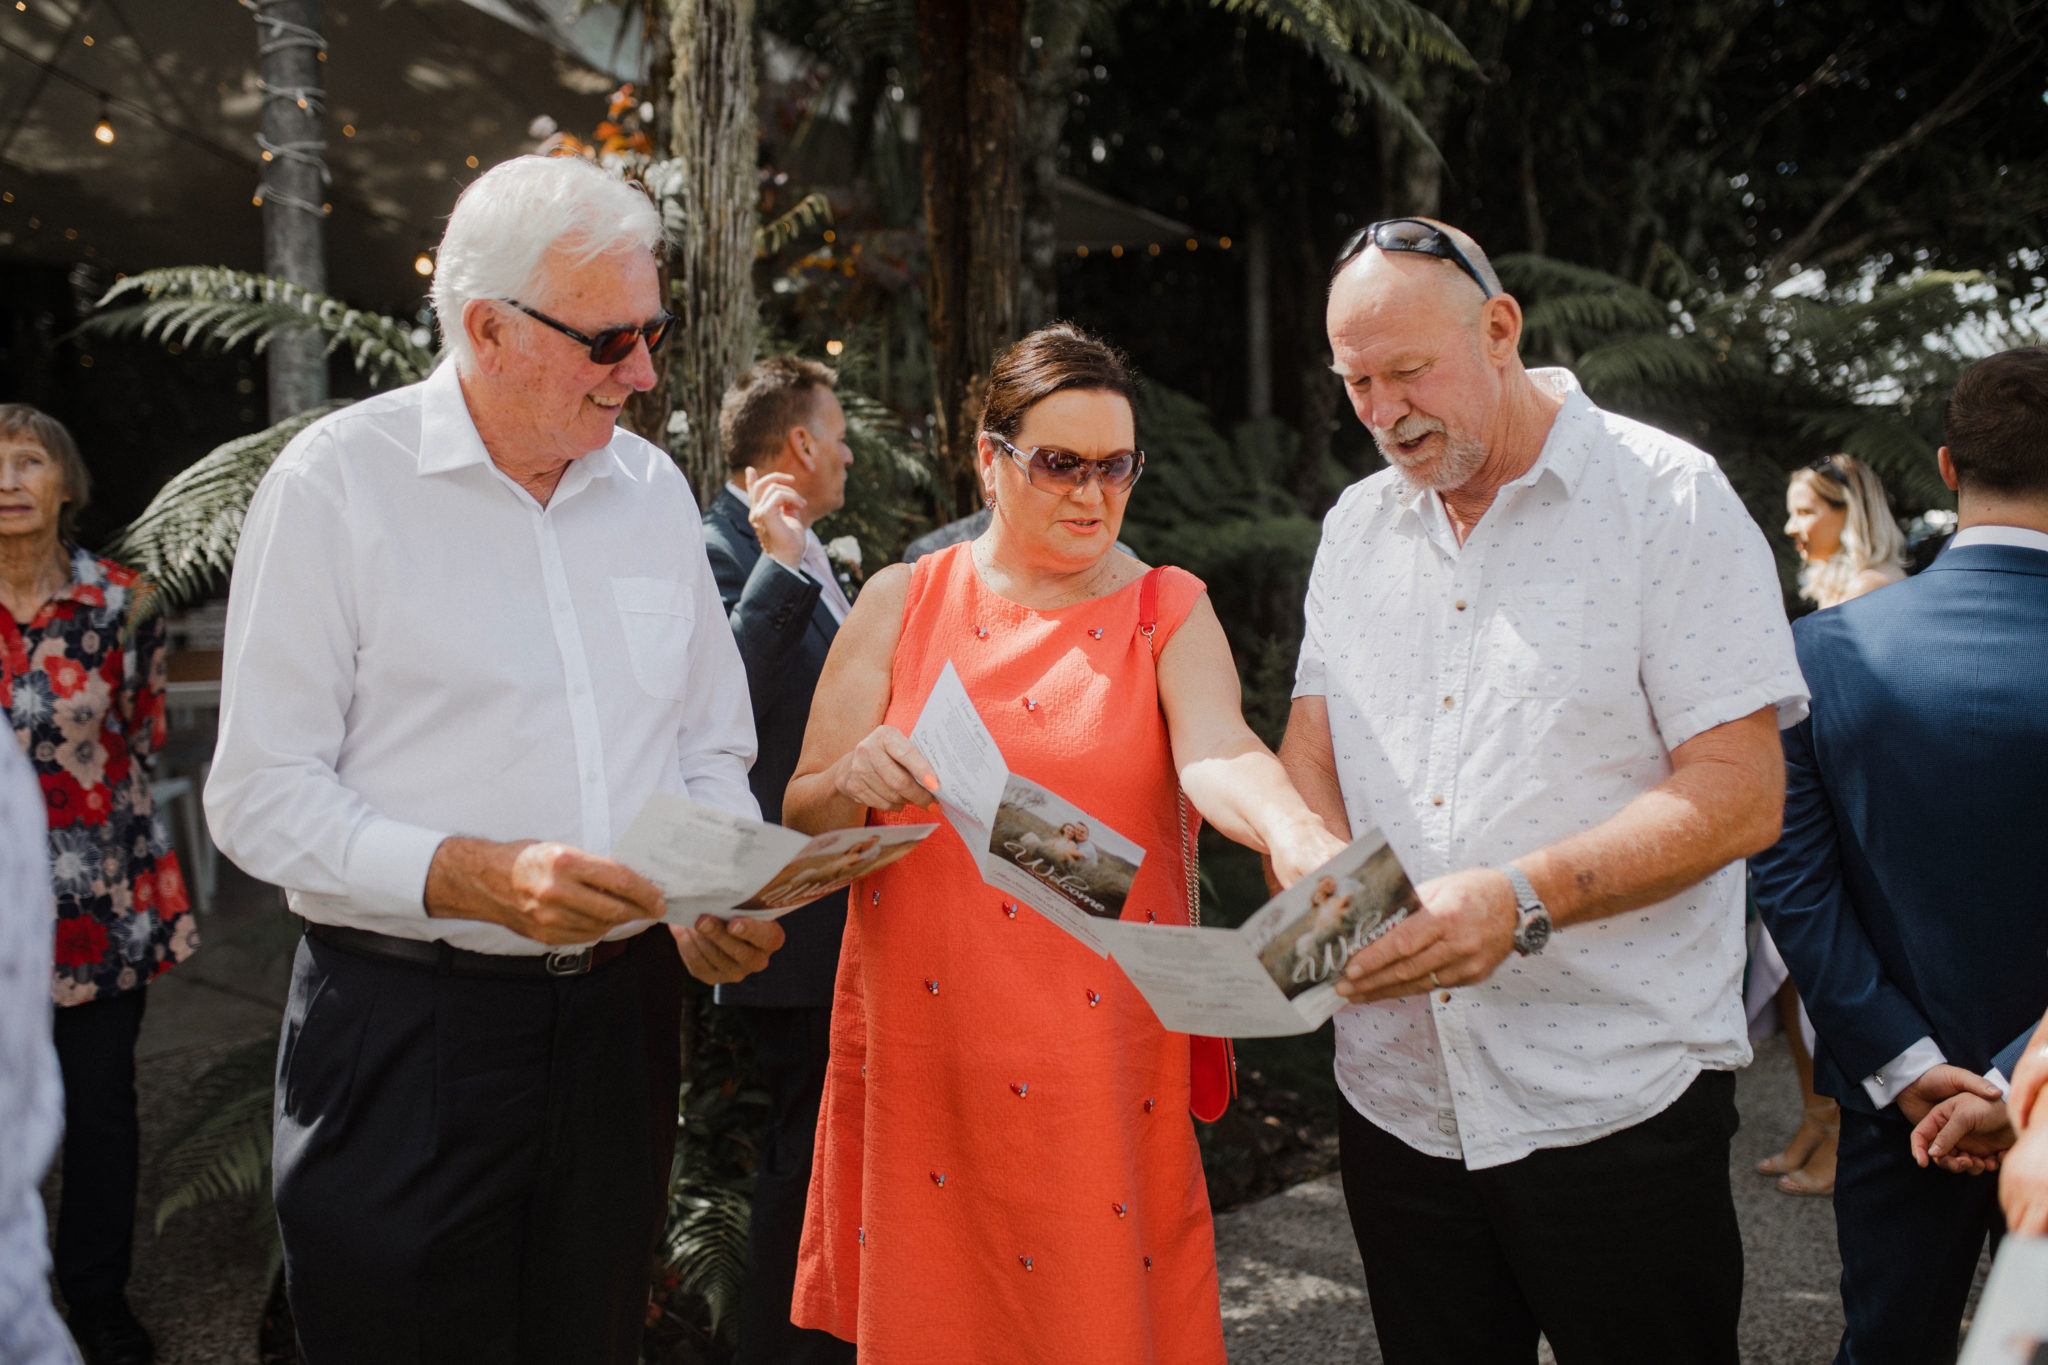 auckland wedding guests reading itinerary